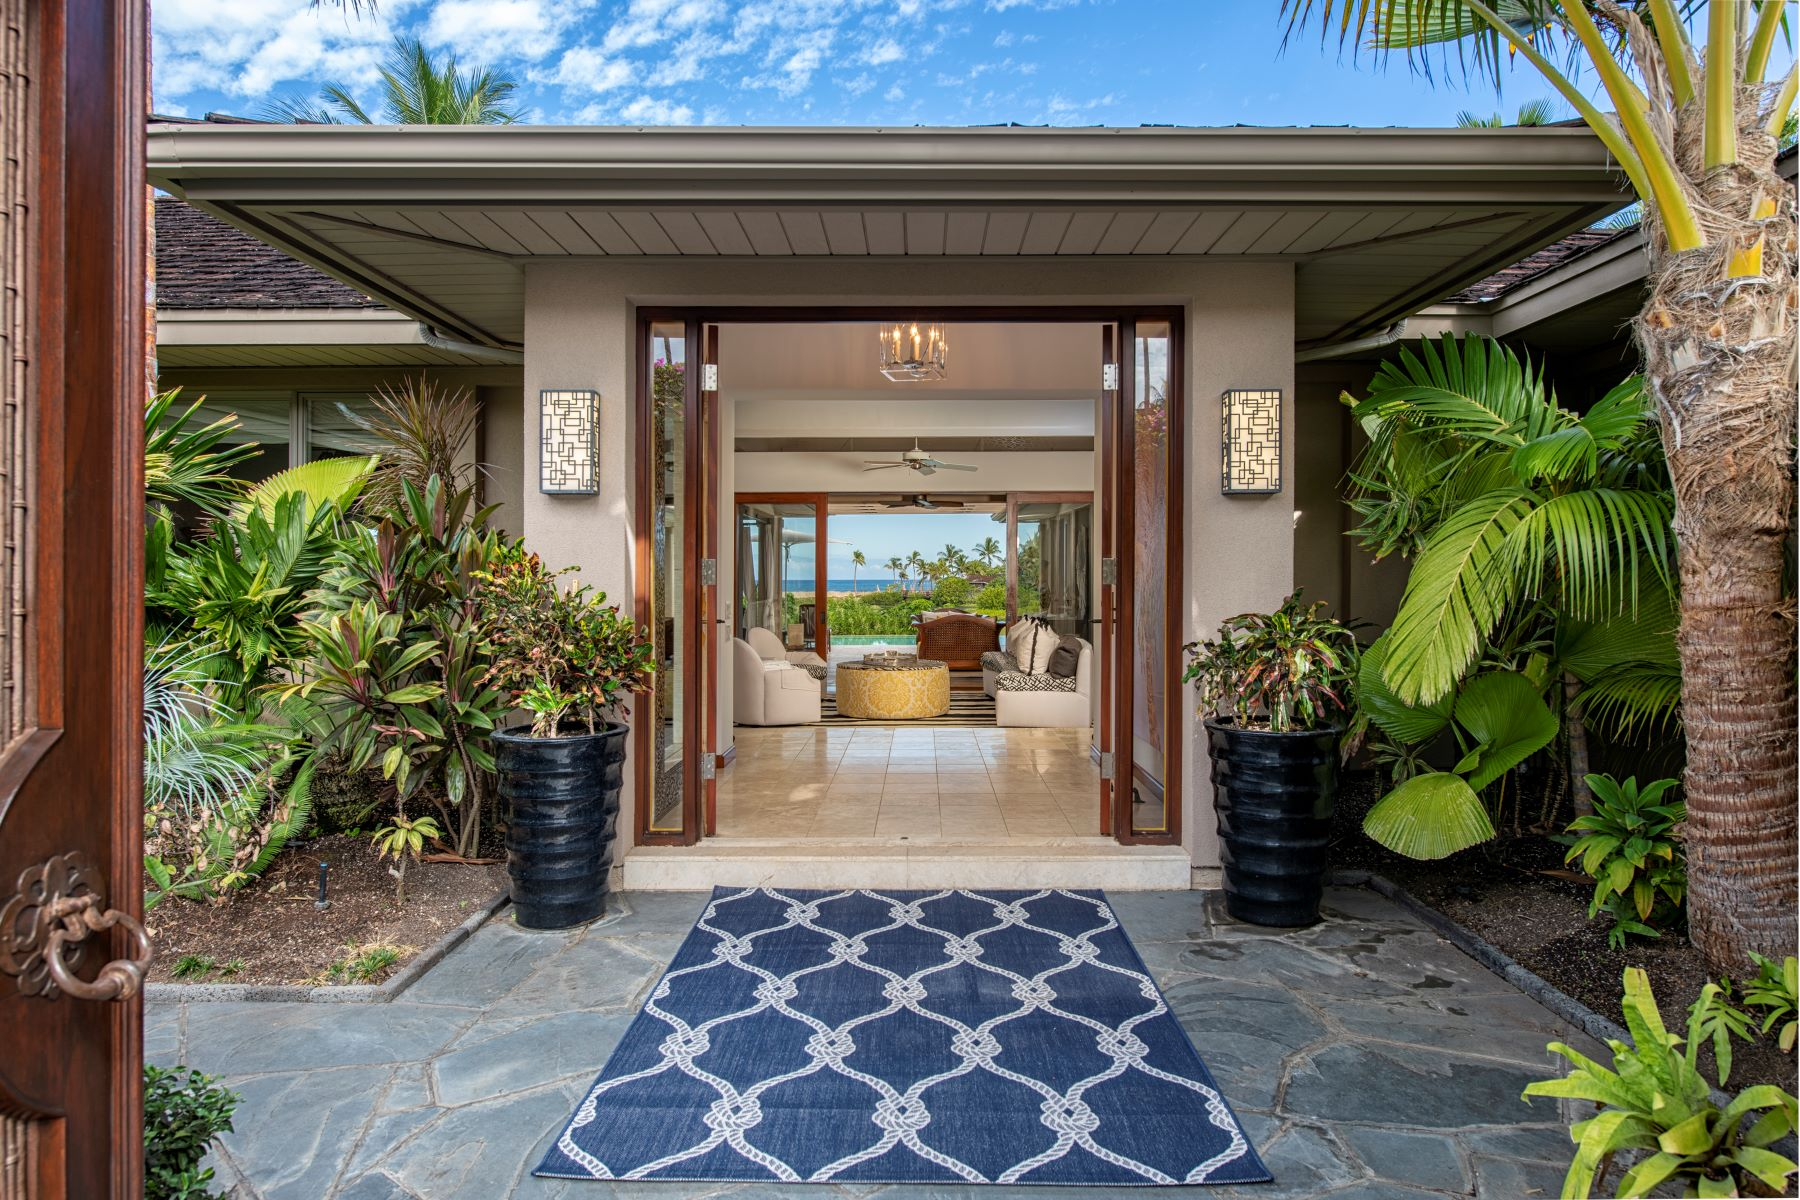 Single Family Homes for Sale at 72-160 Kumukehu Street, Kailua-Kona, HI 96740 72-160 Kumukehu Street Kailua-Kona, Hawaii 96740 United States